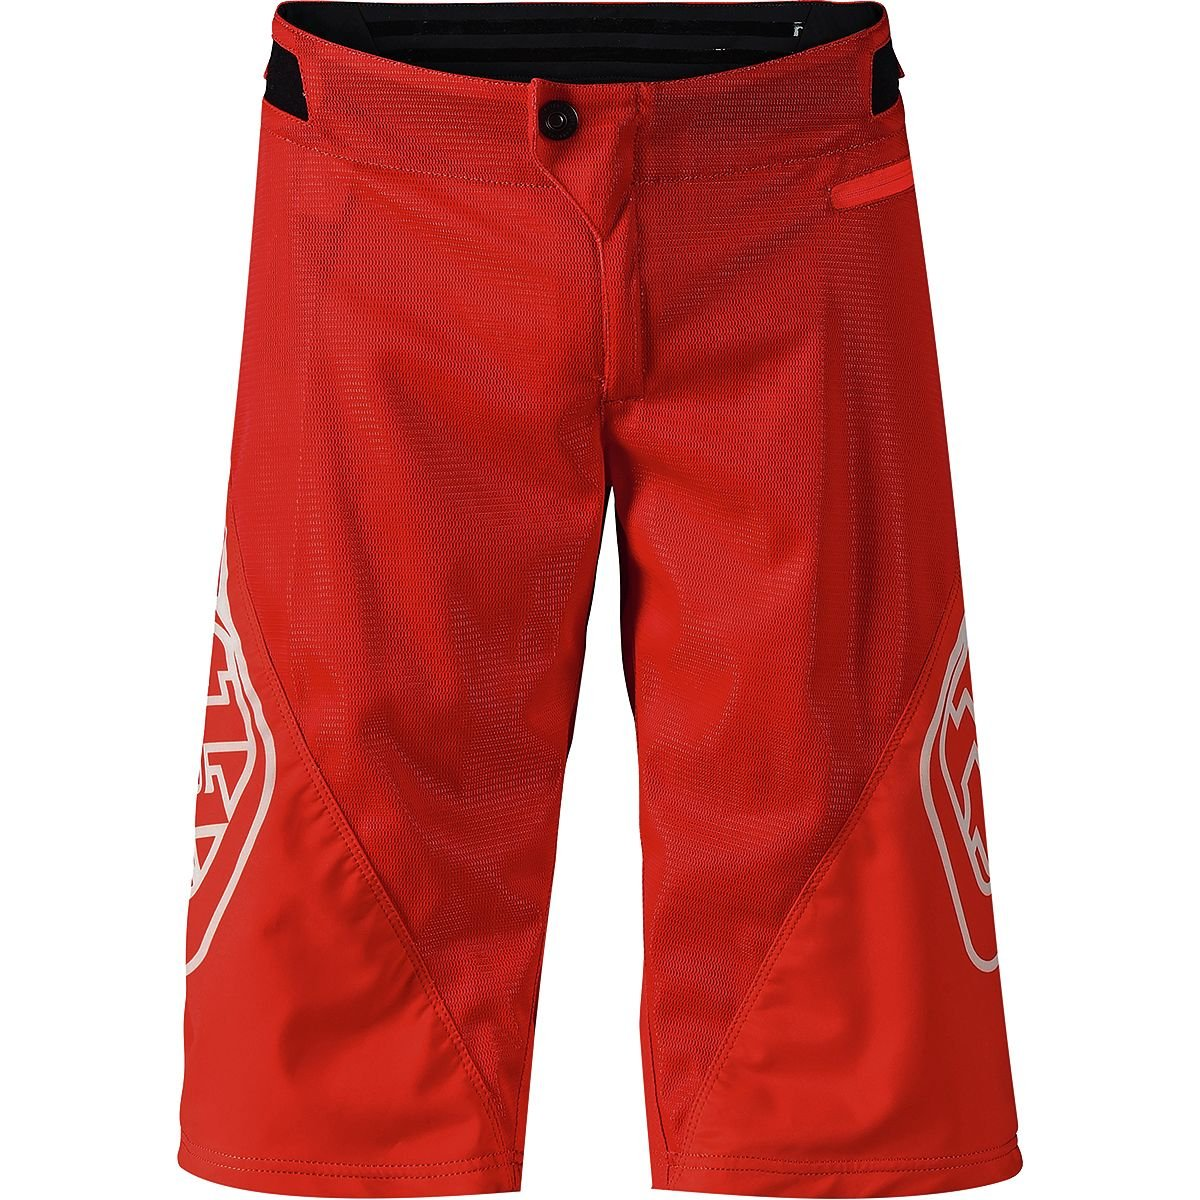 Troy Lee Designs Sprint Shorts - Boys' Red, 18 by Troy Lee Designs